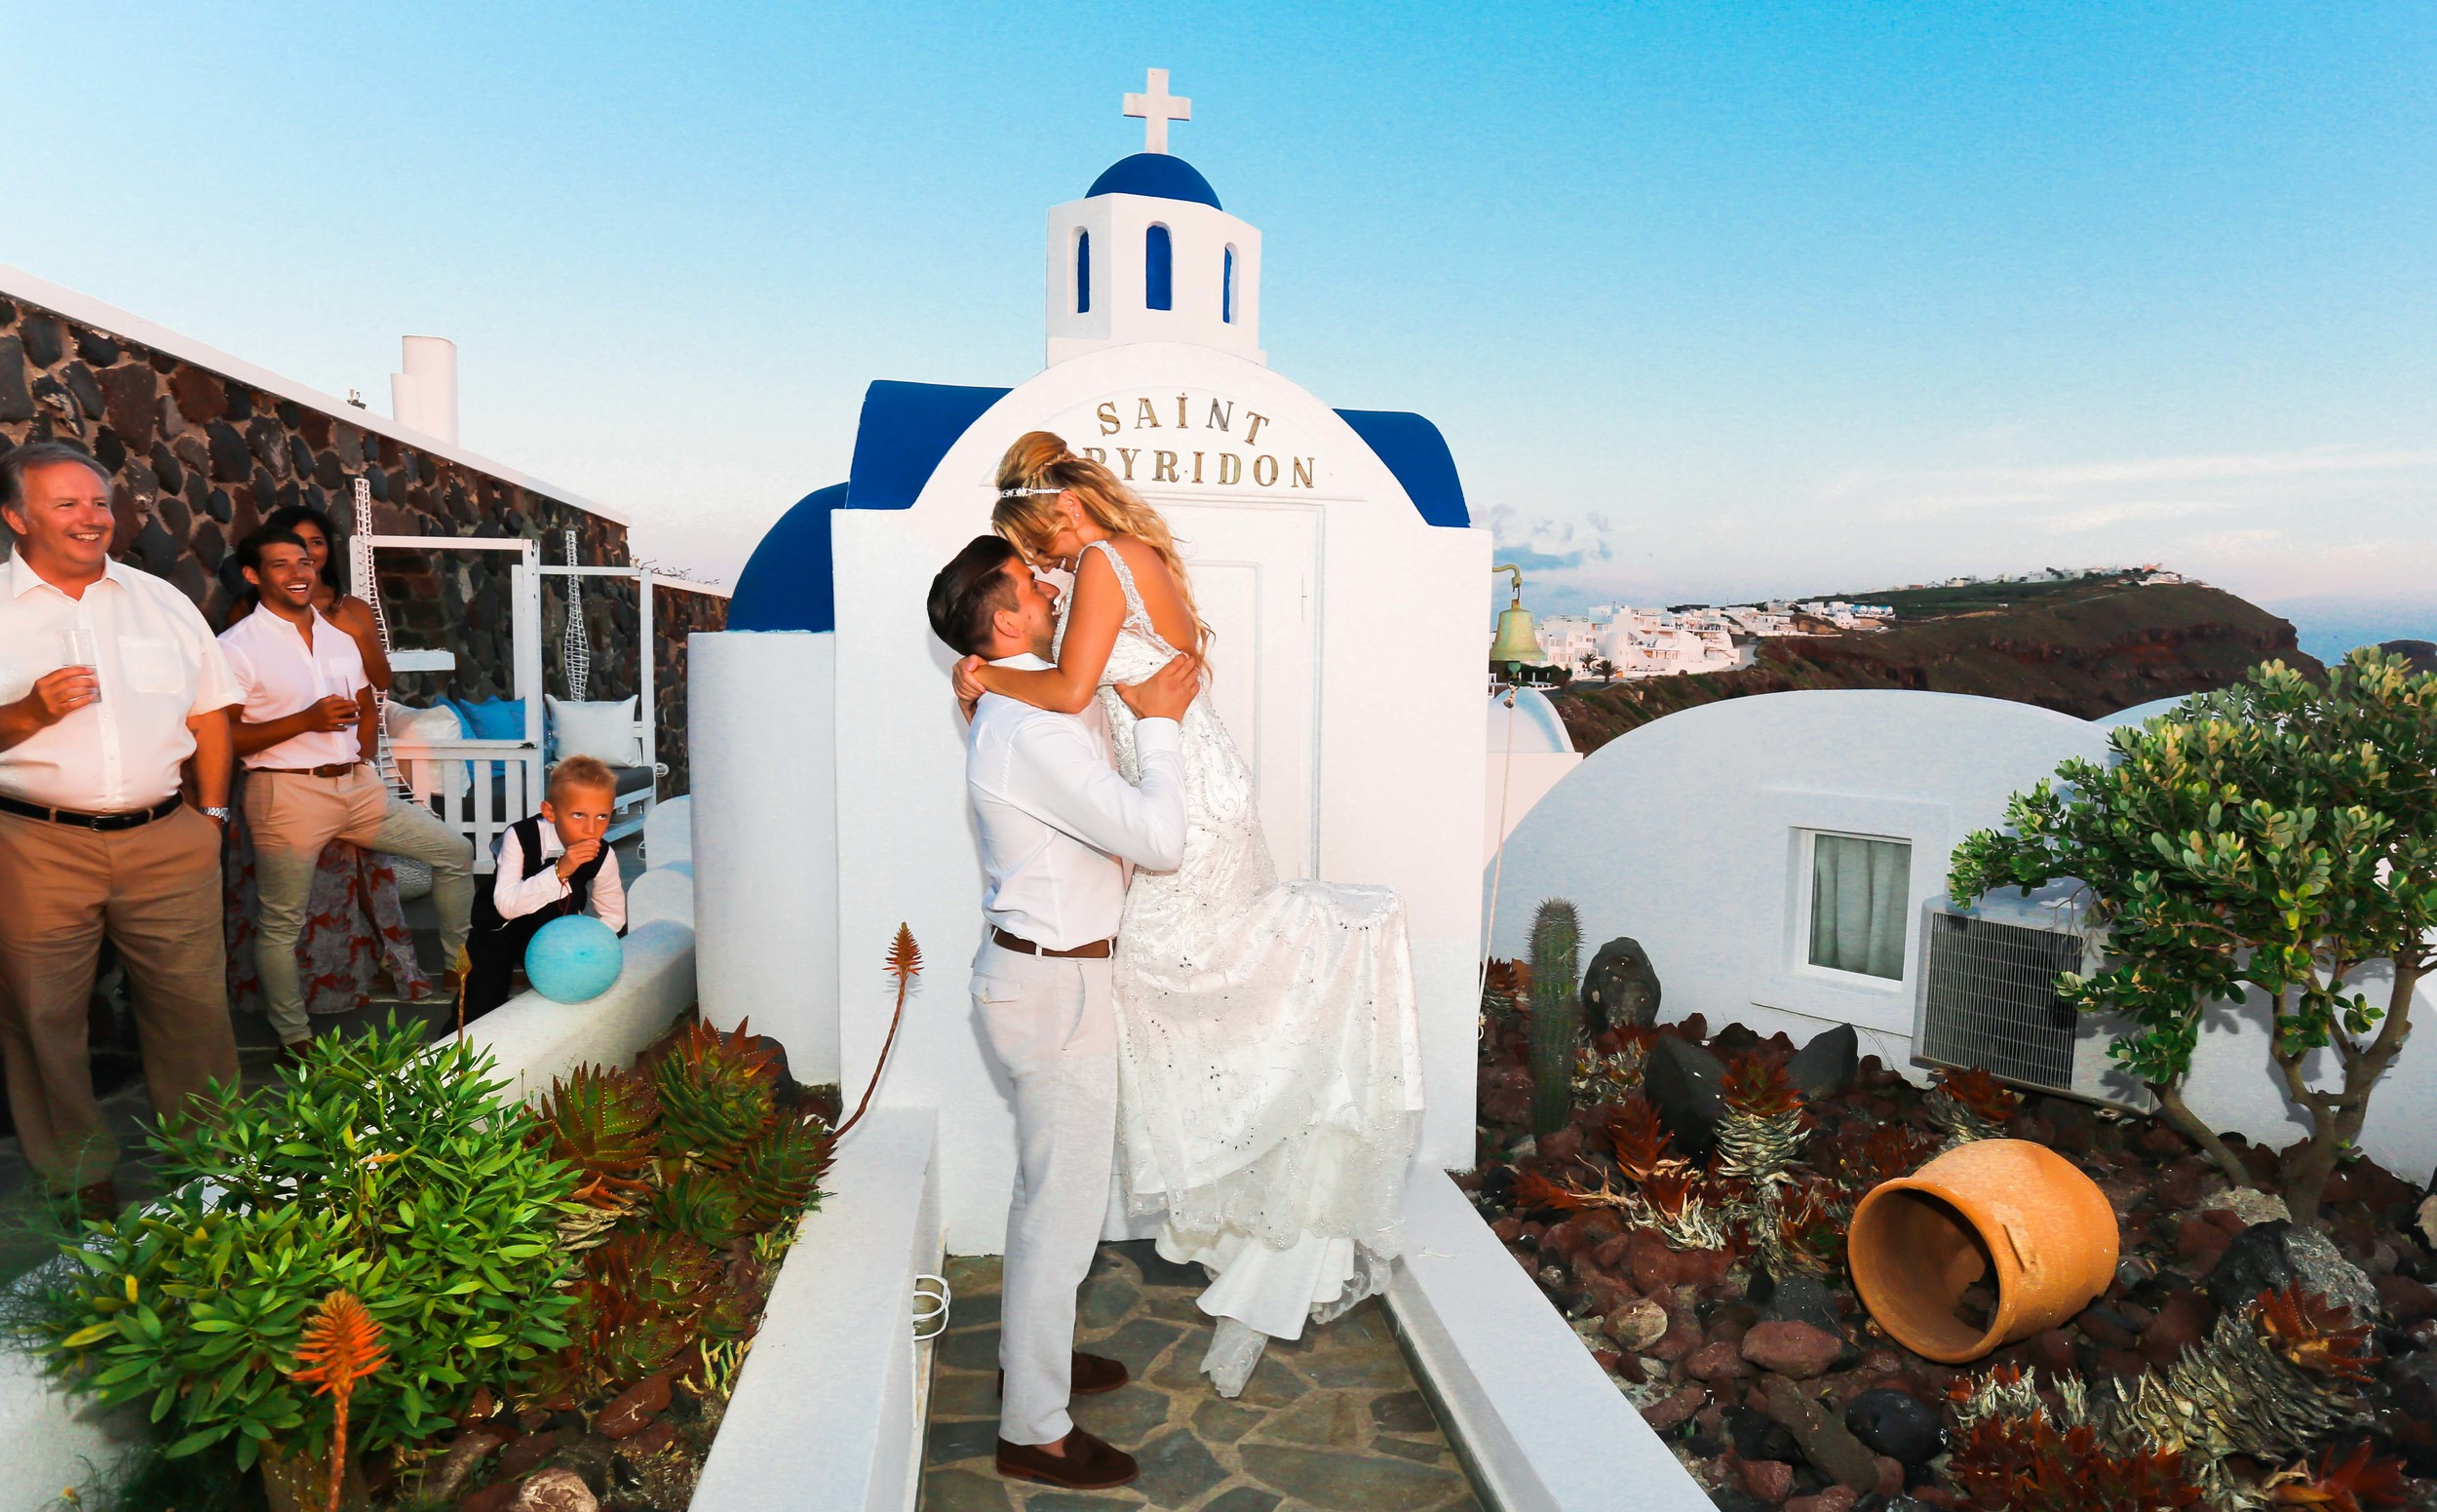 073 - Kerry and Lee - Destination Wedding in Santorini by www.markpugh.com -1012.JPG